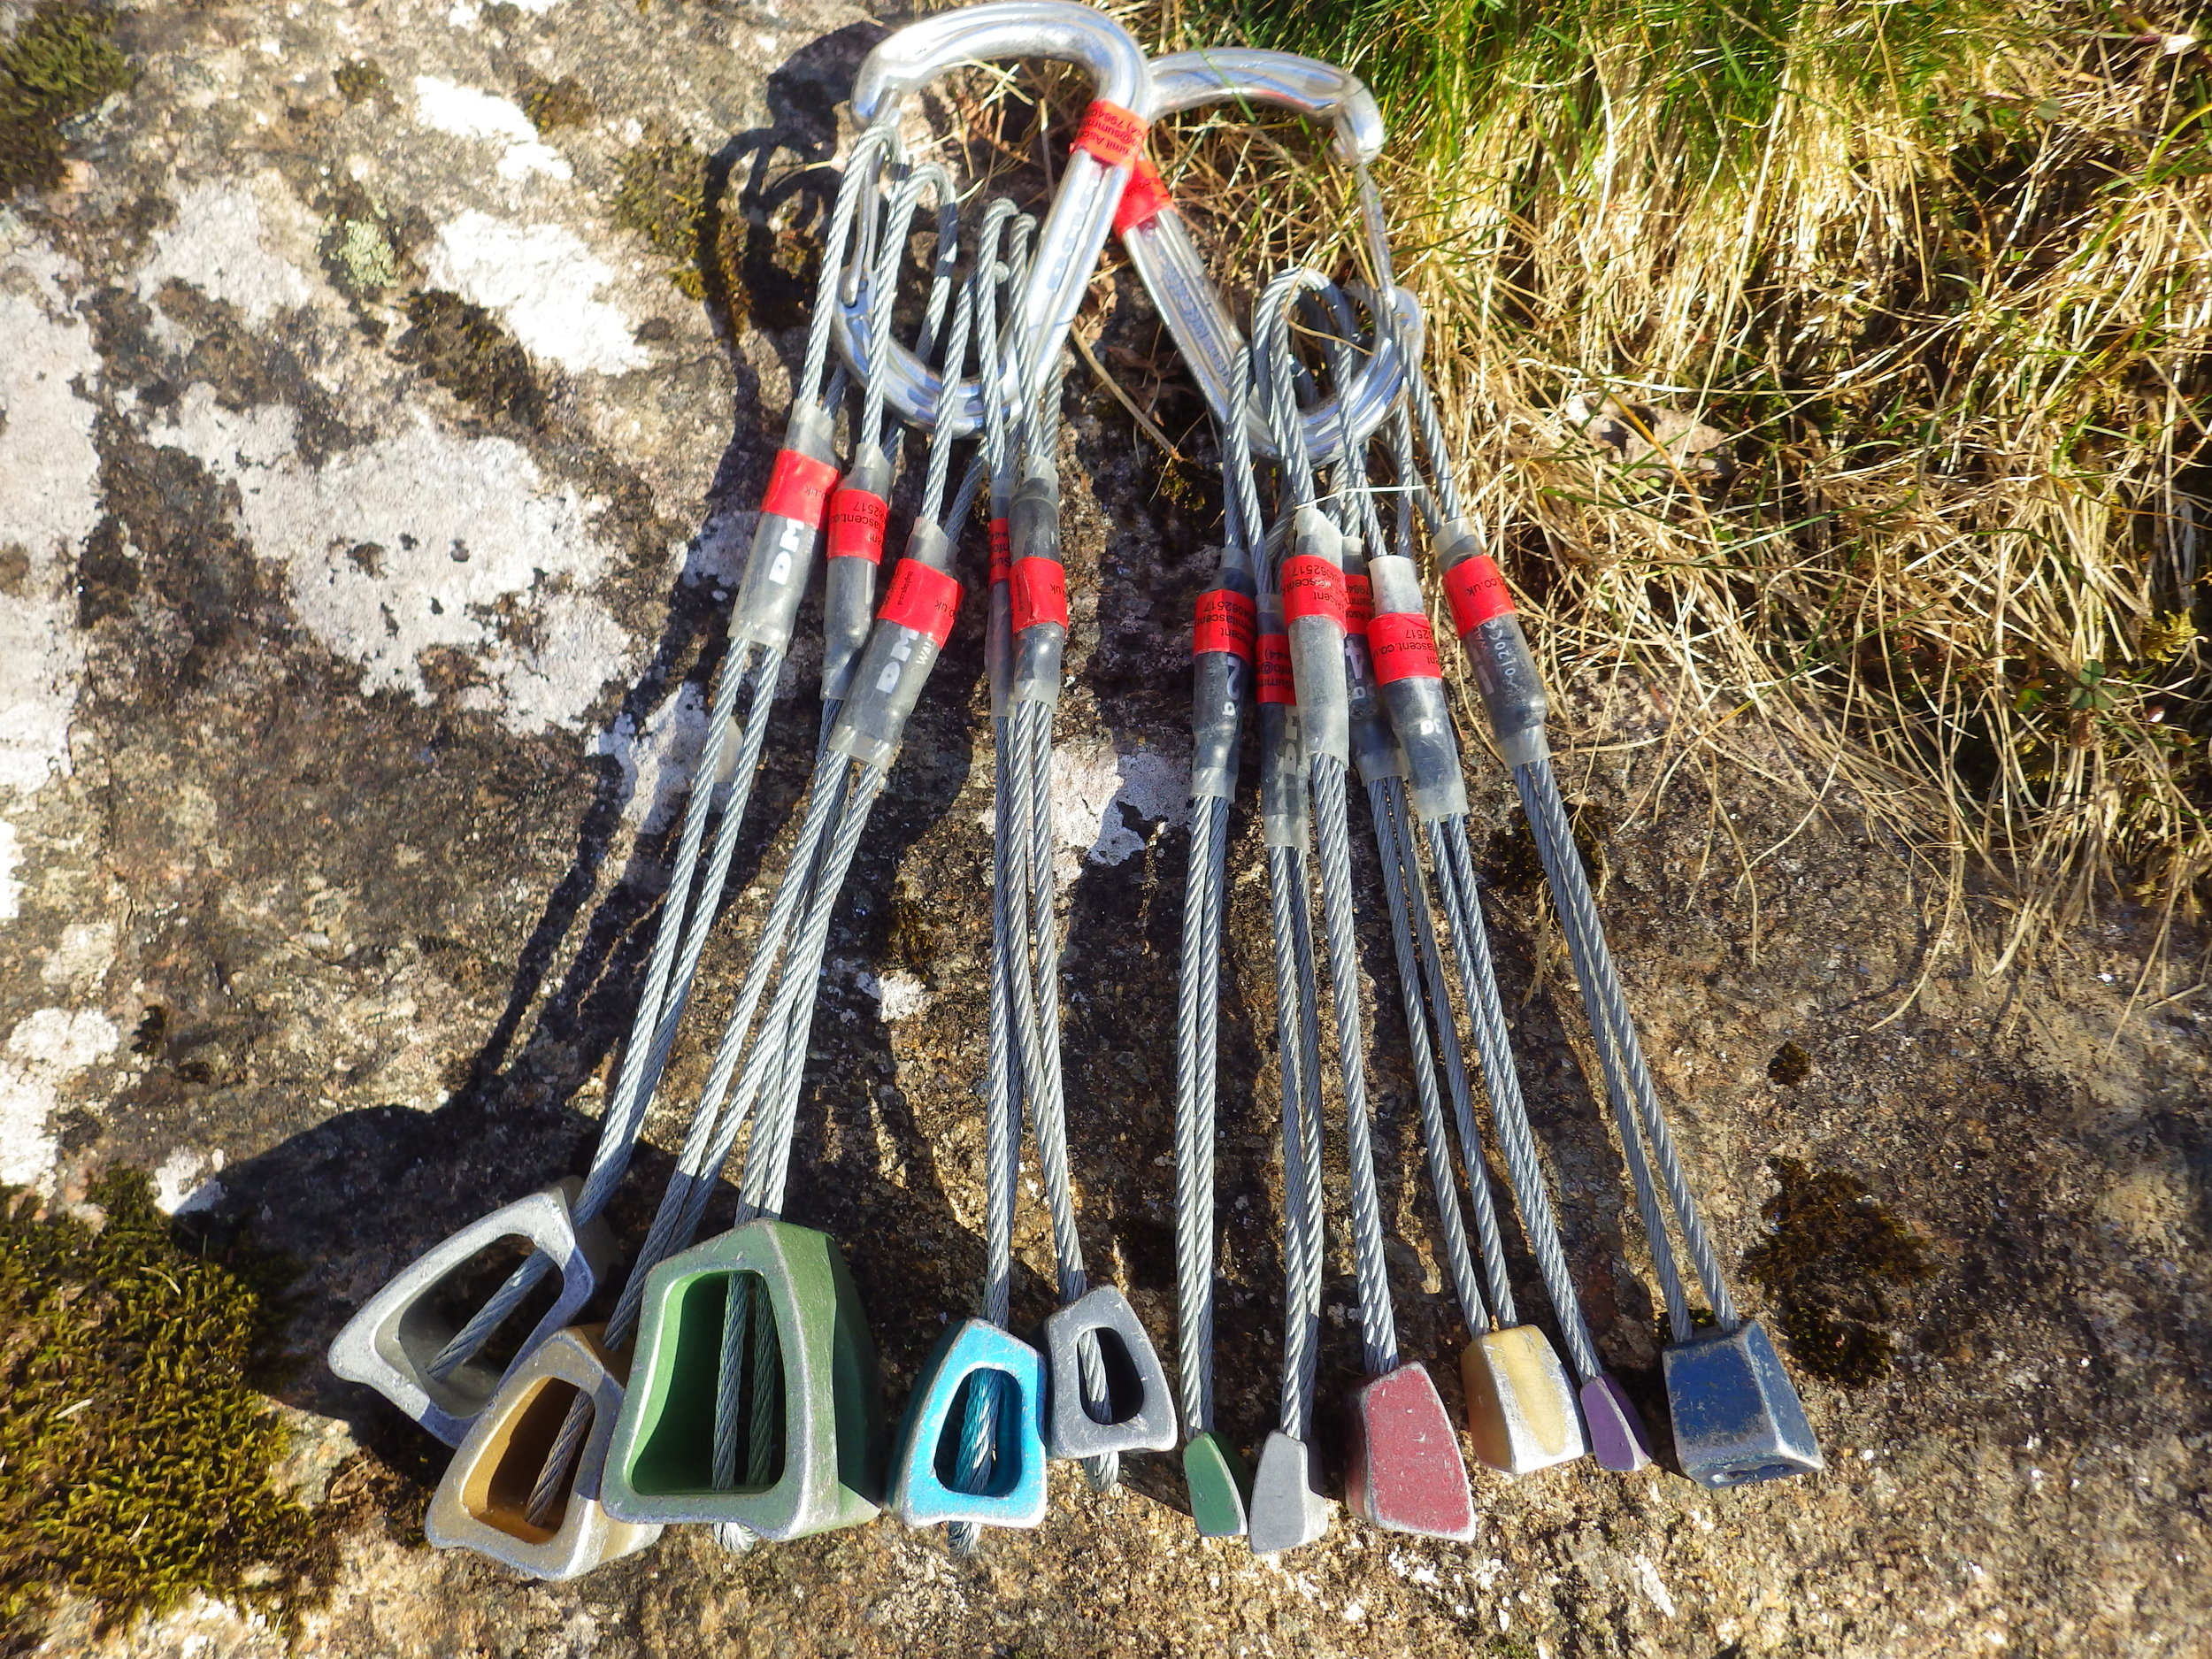 A full set of anodised DMM Walnut wires (1-11), on two seperate wire gate carabiners